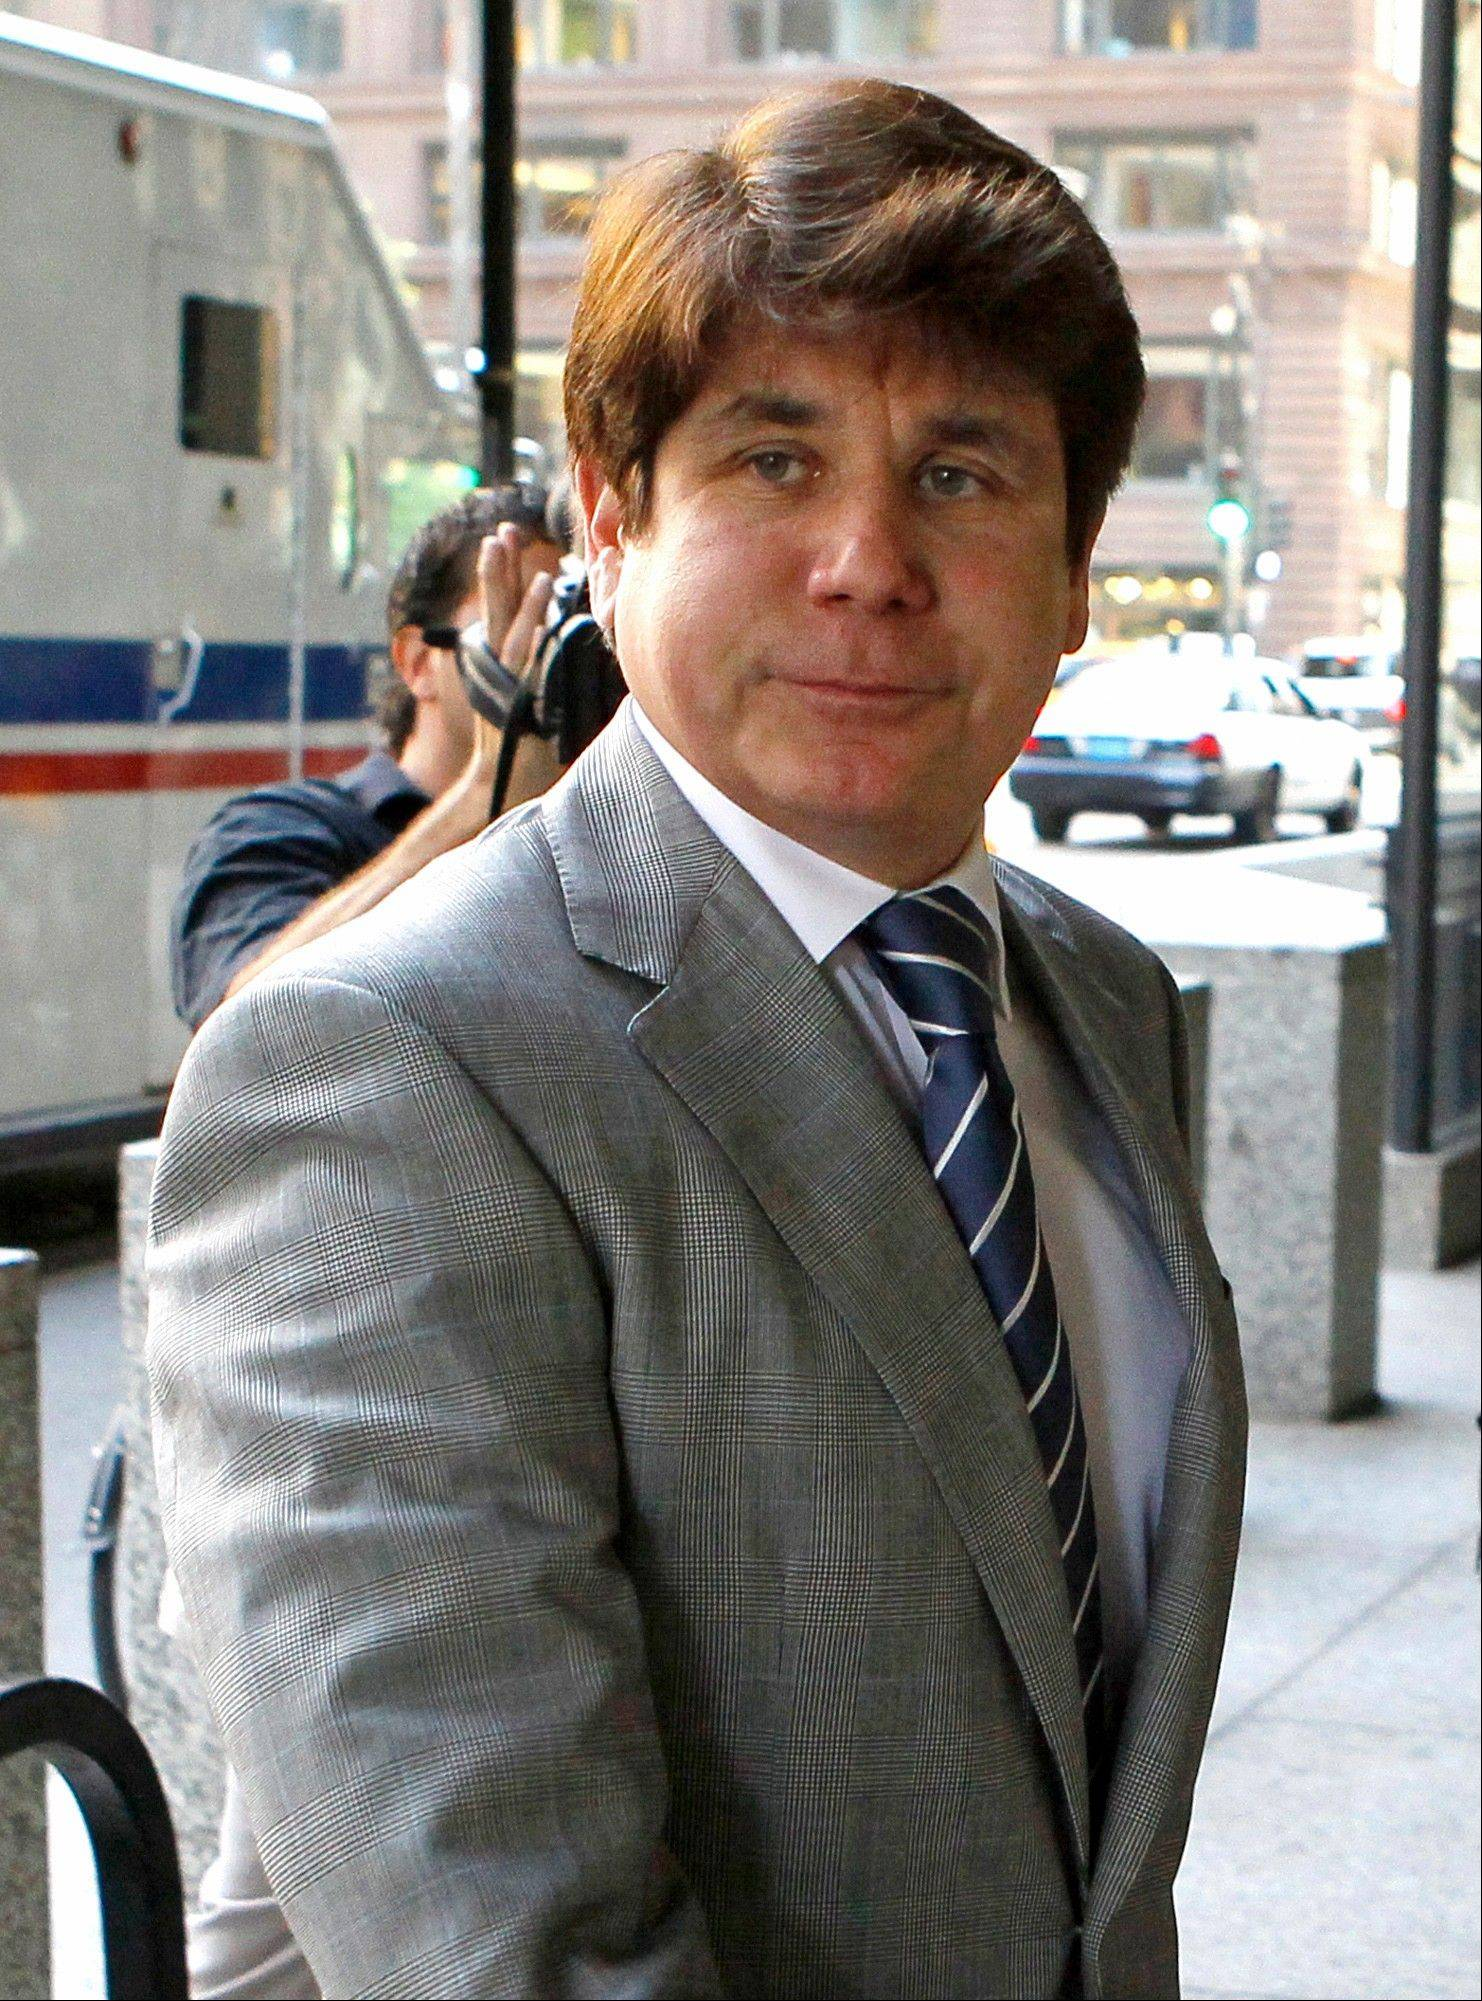 Former Gov. Rod Blagojevich will be sentenced for corruption on Dec. 6